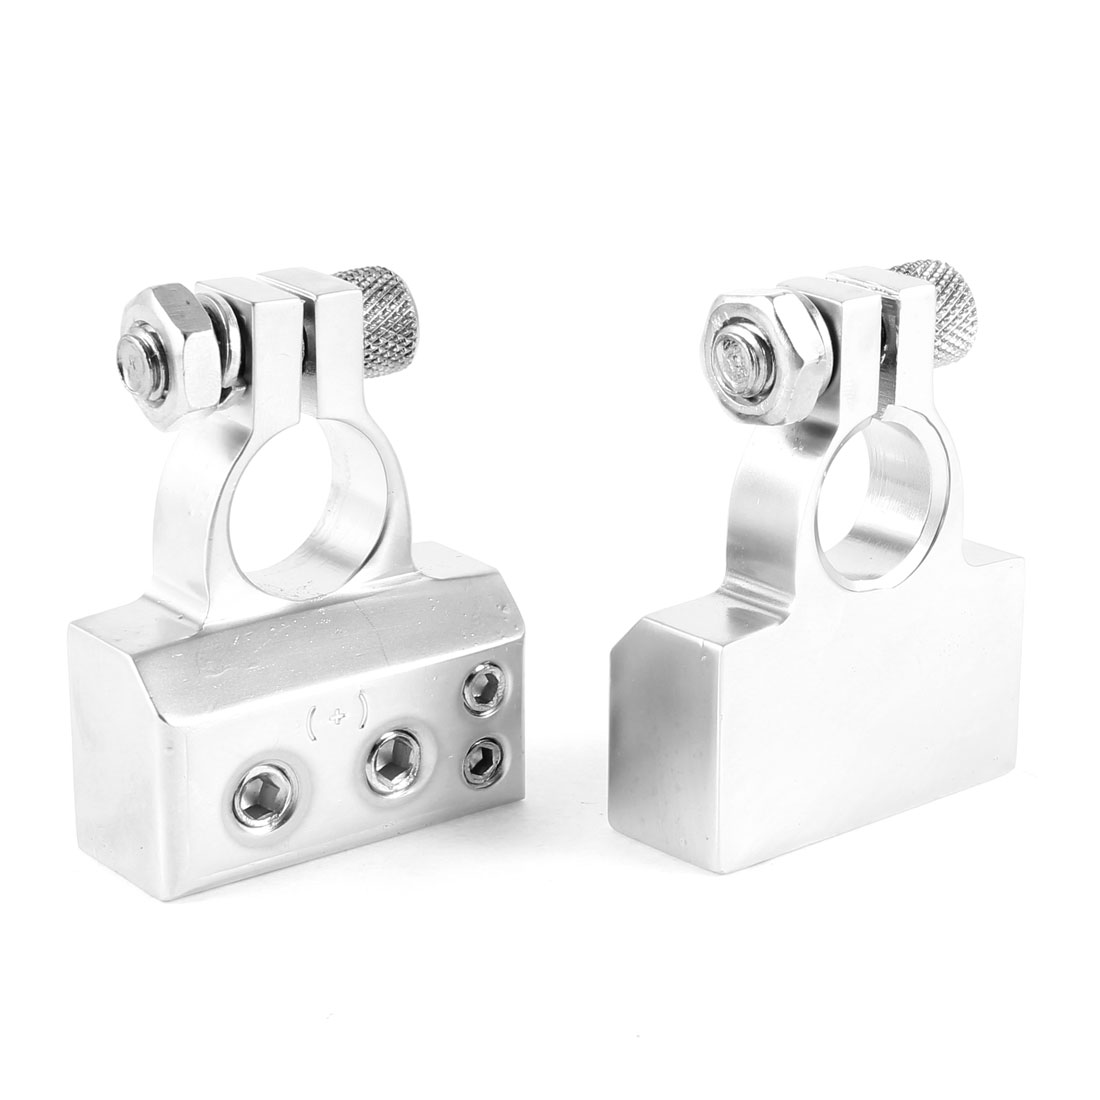 Unique Bargains 2 Pcs Car Chrome Pleated Metal Battery Connector Terminals Silver Tone